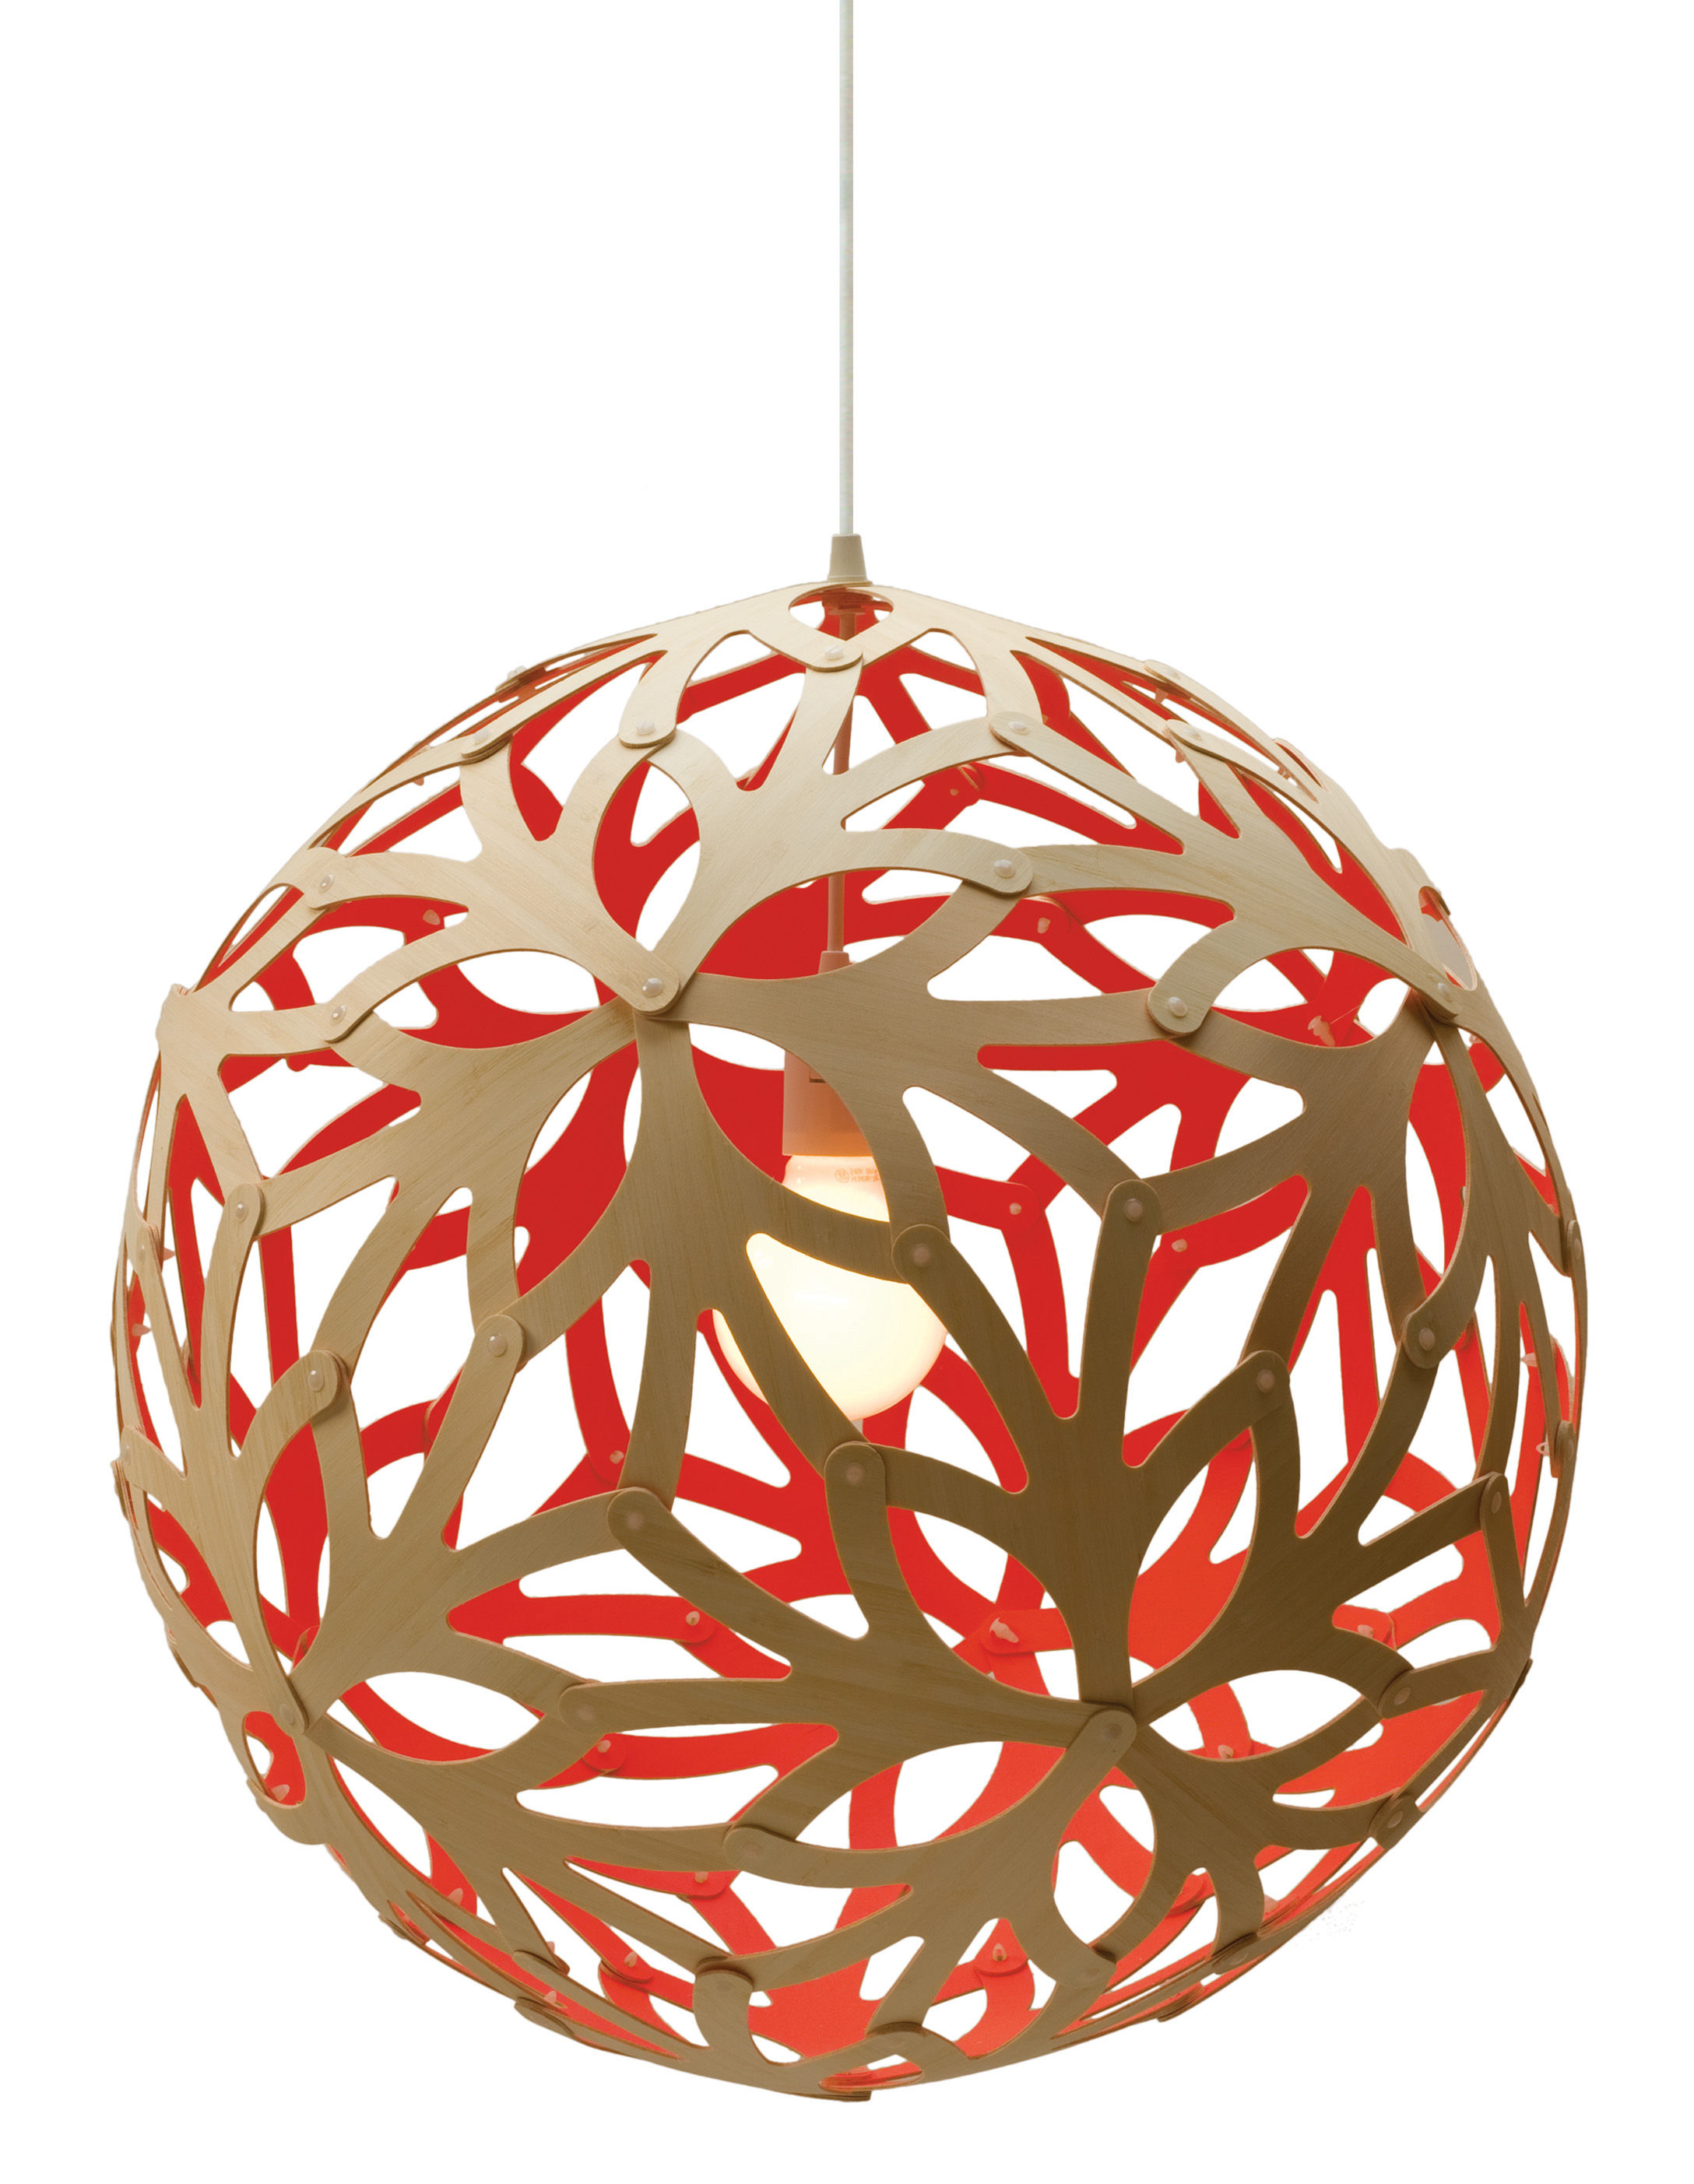 Lighting - Pendant Lighting - Floral Pendant - Ø 40 cm - Bicoloured by David Trubridge - Red / Natural wood - Pine